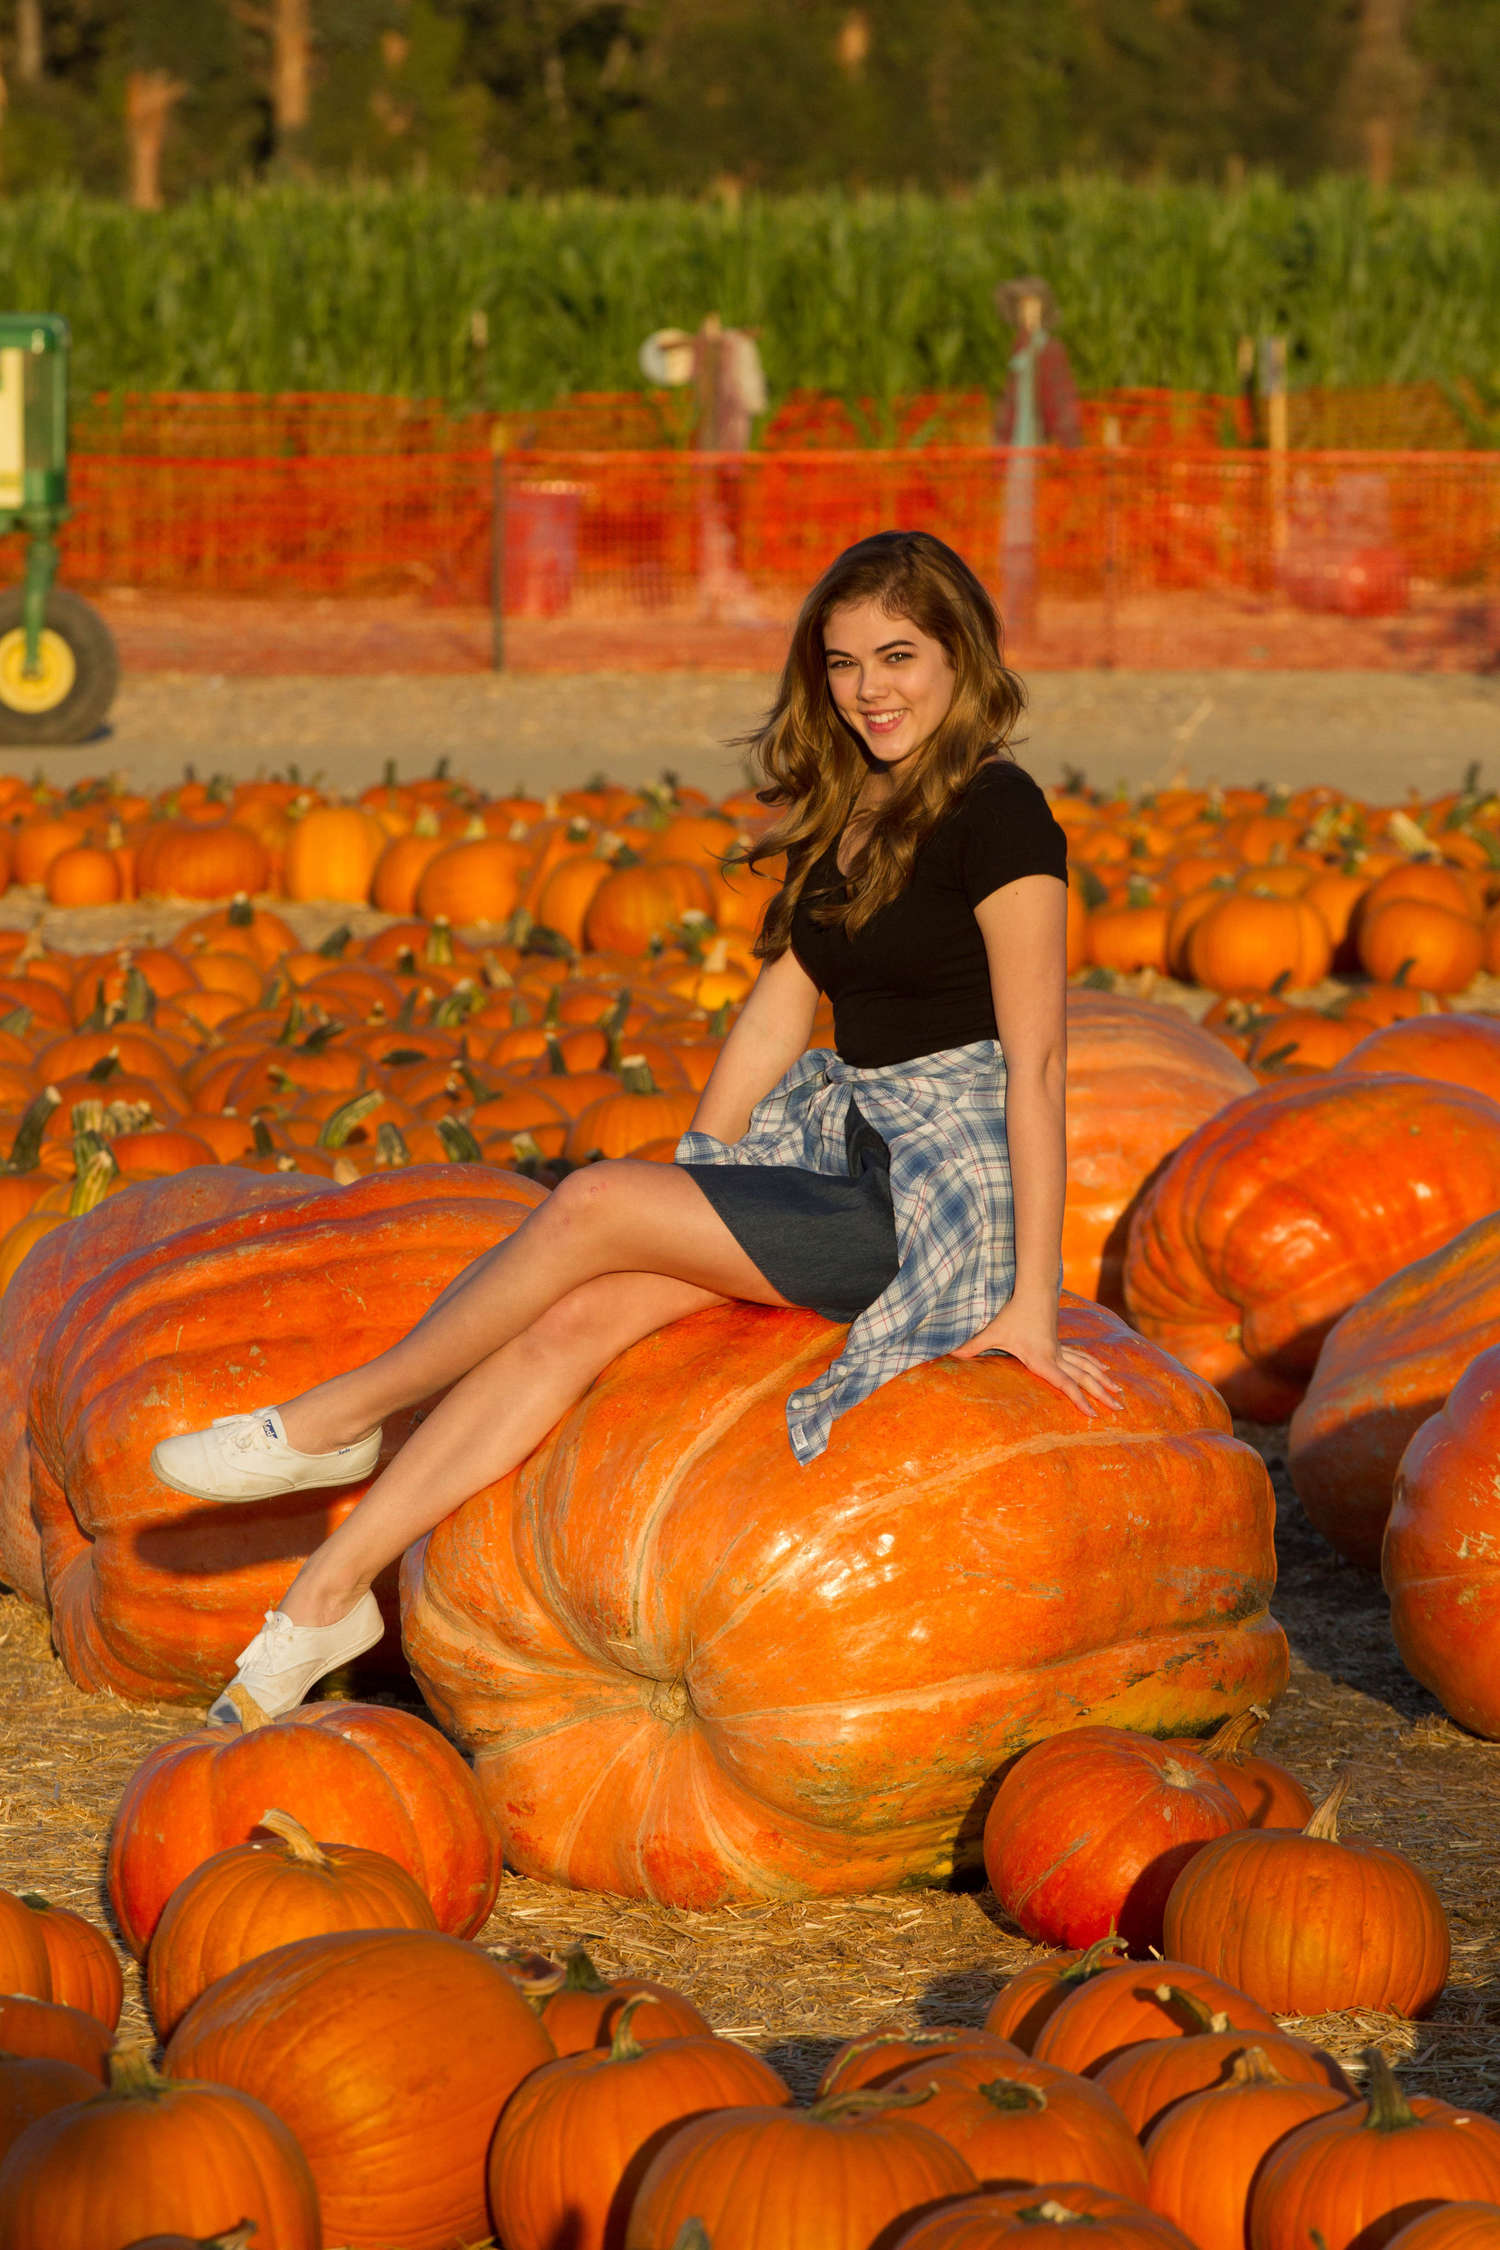 mckaley miller mr bones pumpkin patch 19 gotceleb